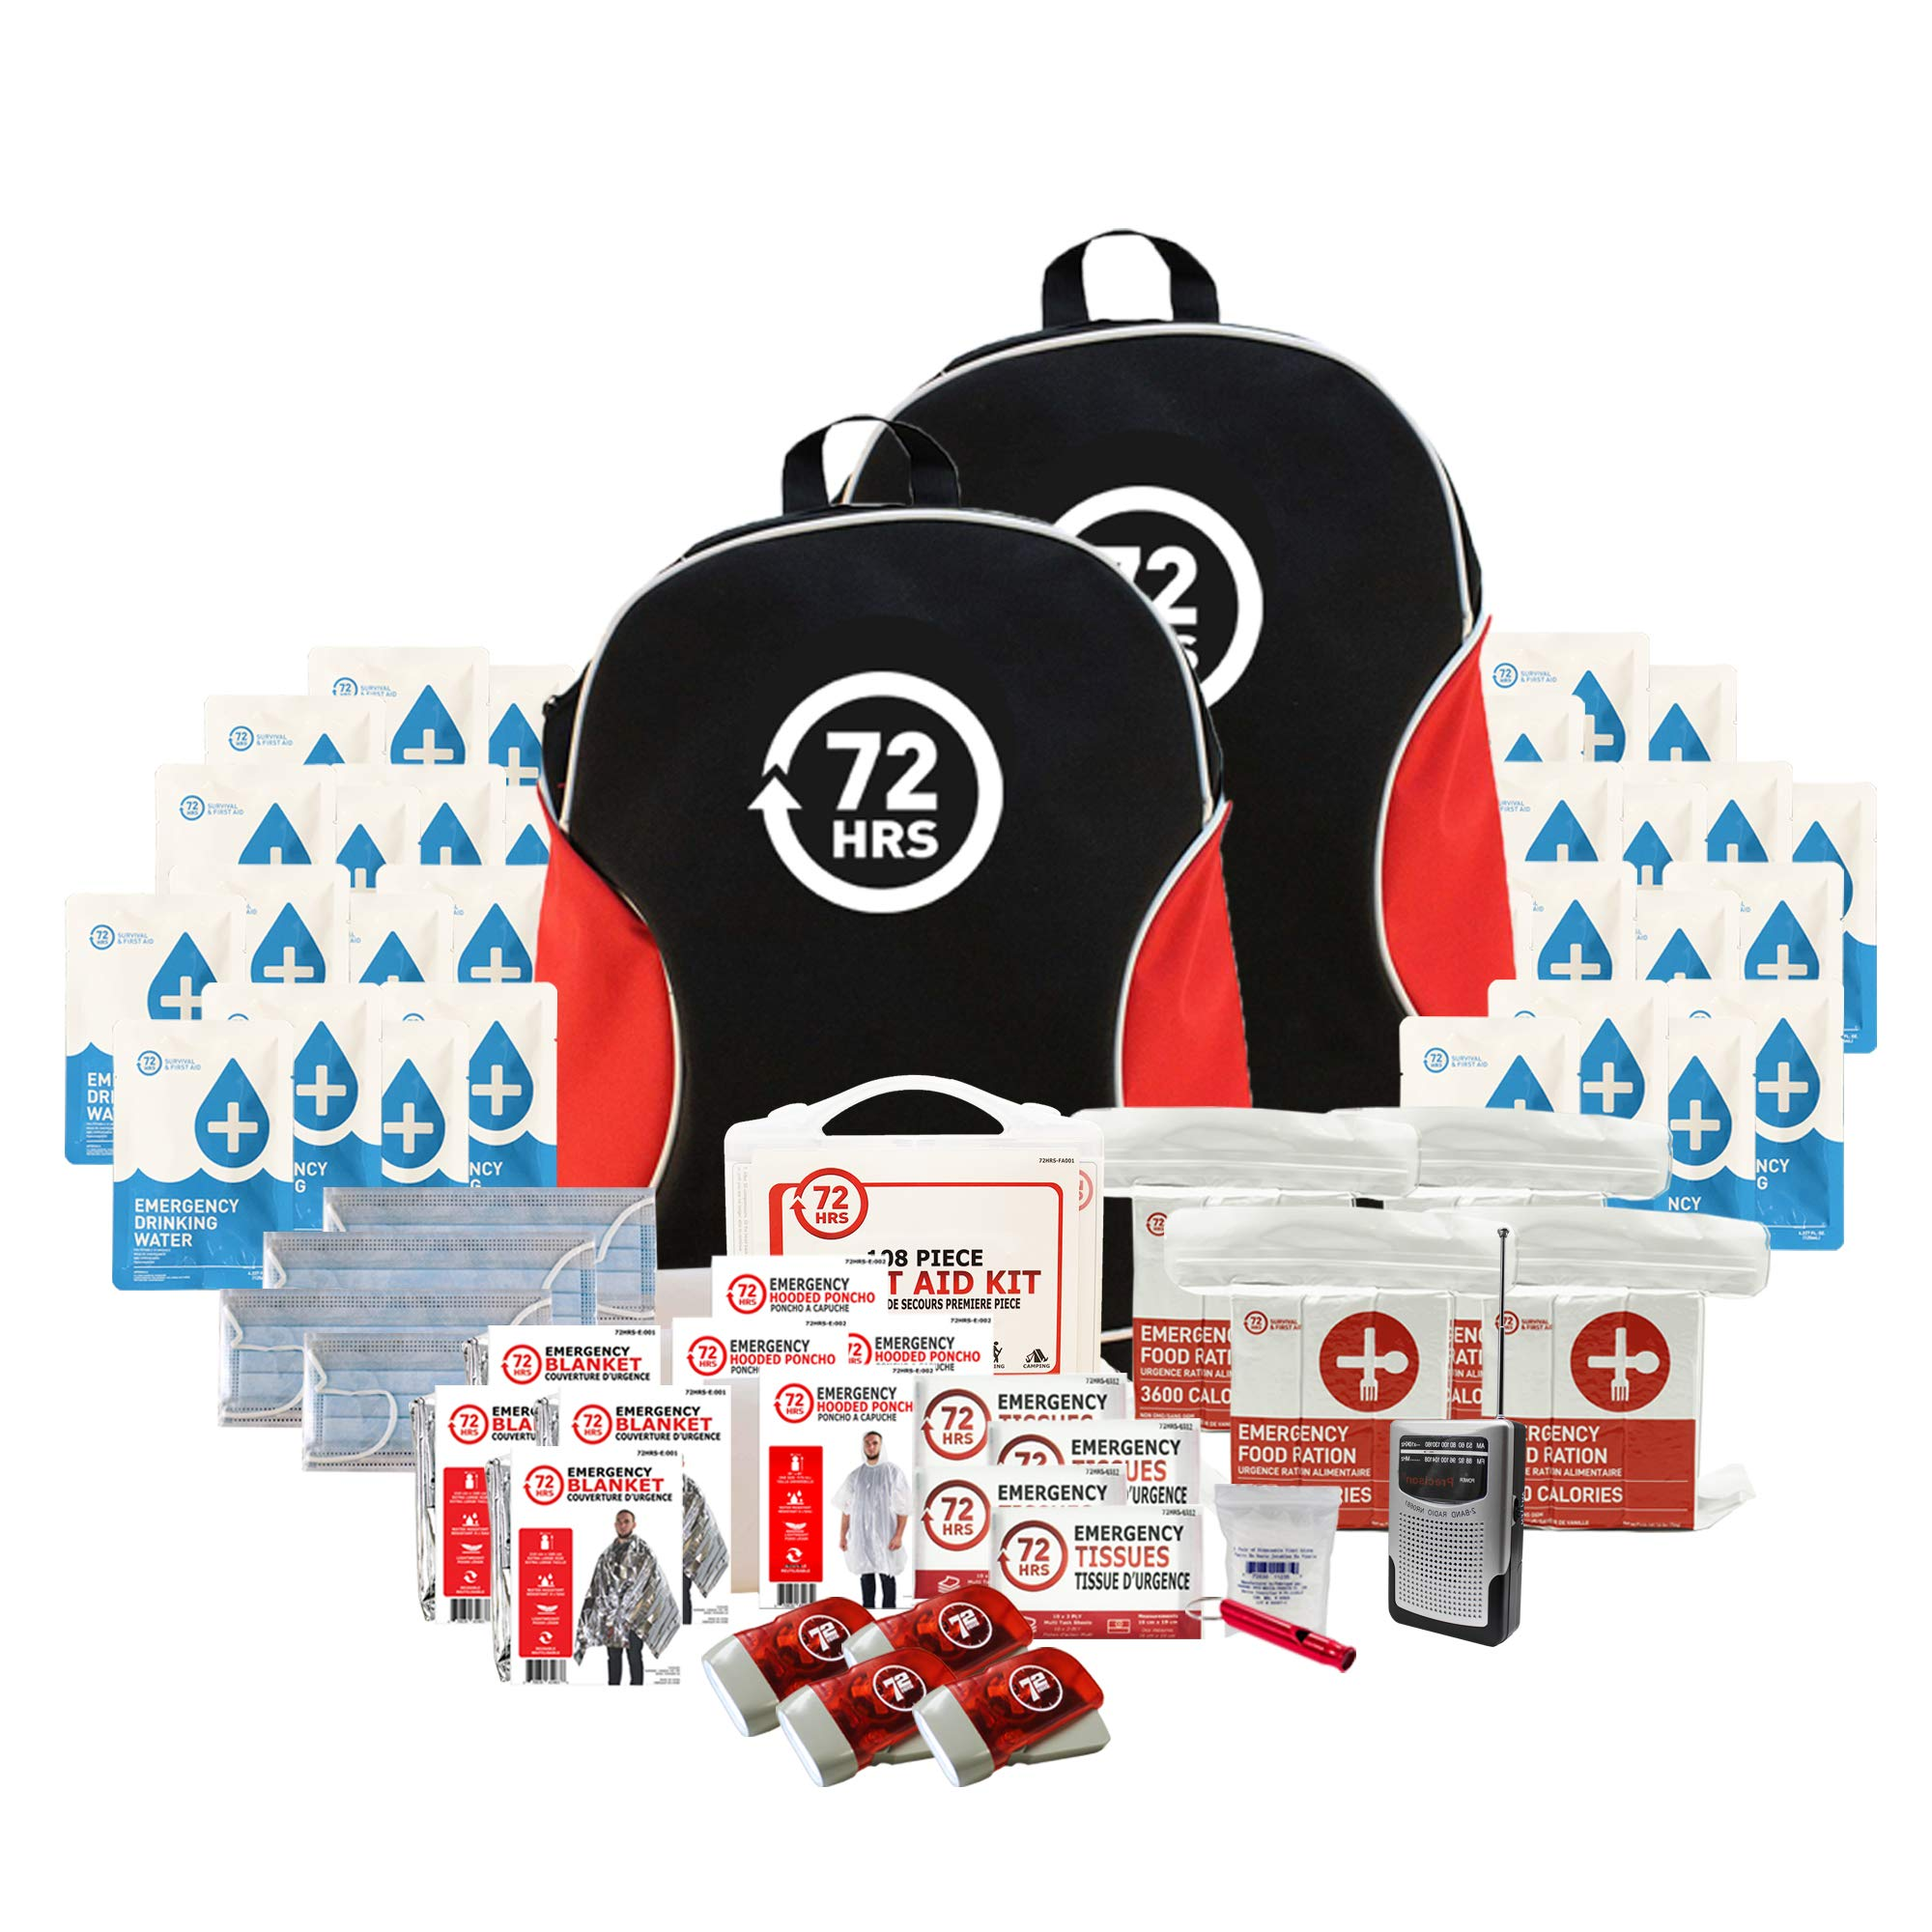 72HRS Earthquake Preparedness Kit, Basic Emergency Kit, Survival Kit for 4 Person Backpack Basic Emergency Kit by 72HRS